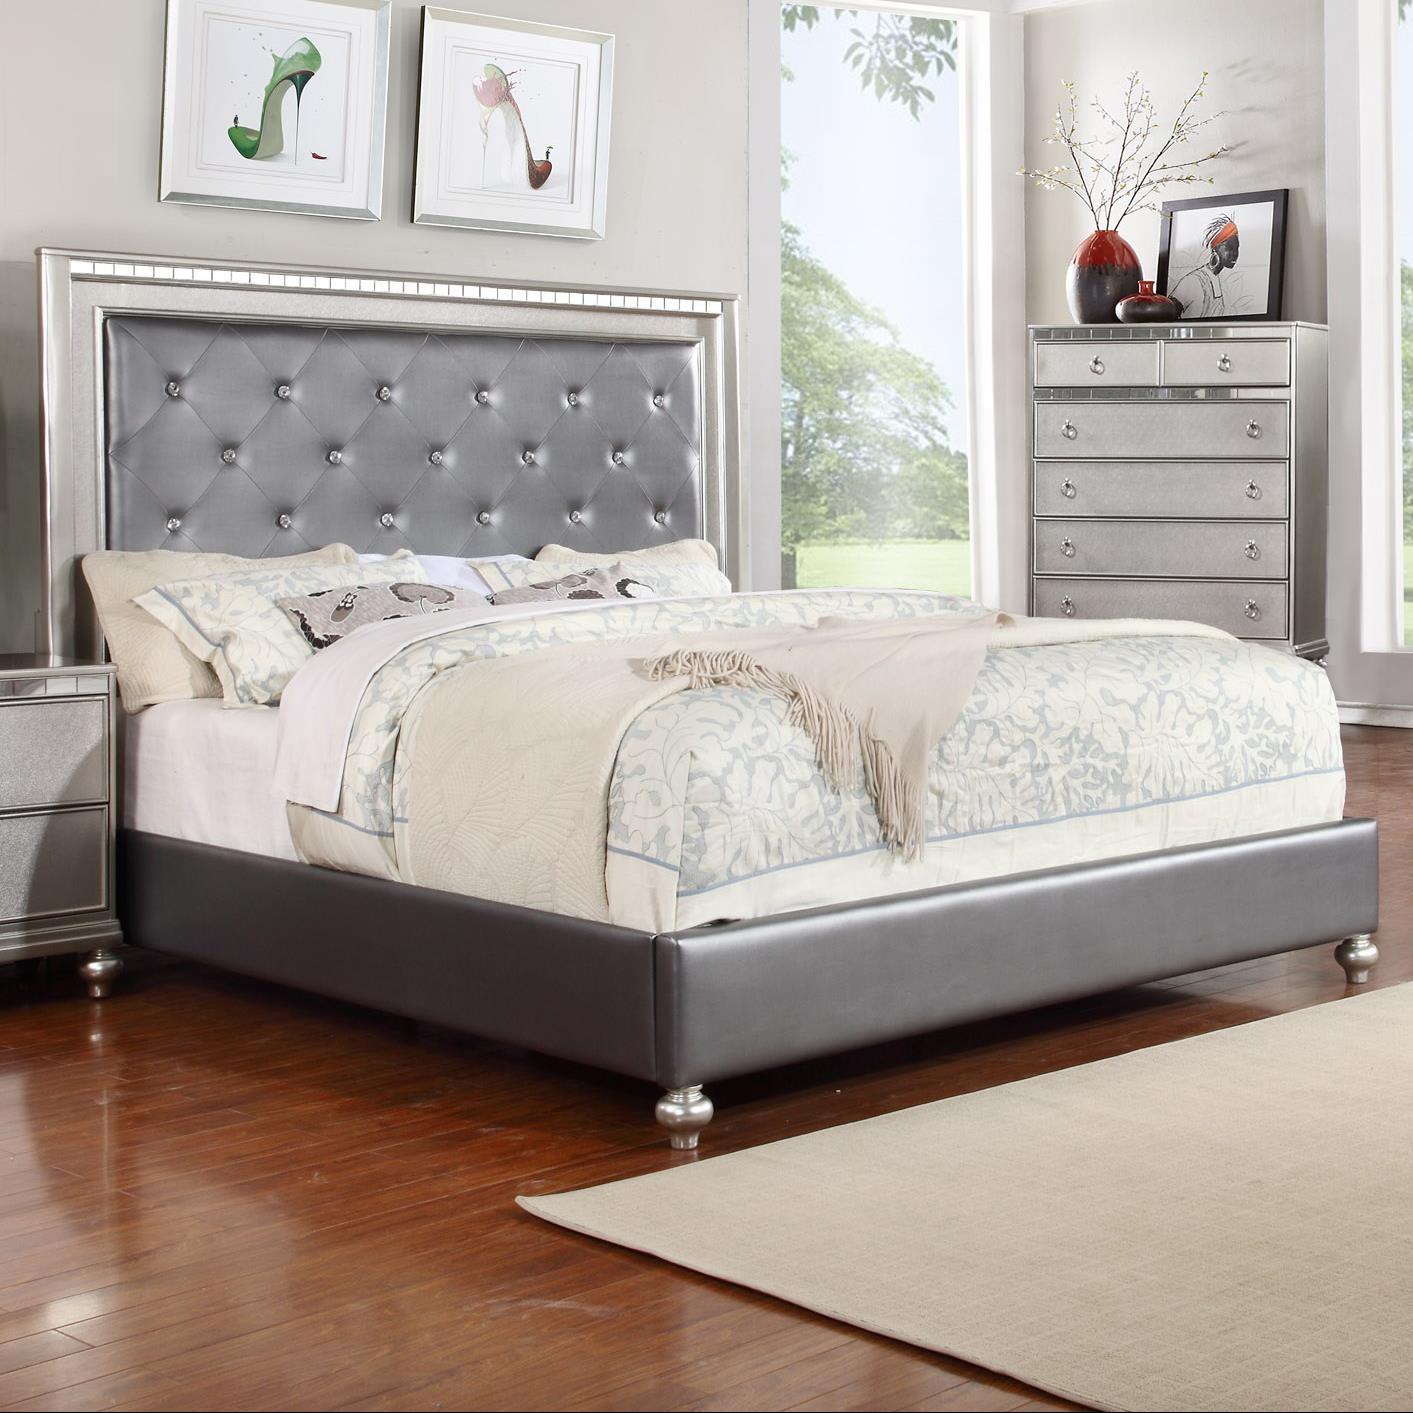 Glam Queen Upholstered Panel Bed With Rhinestone Accent